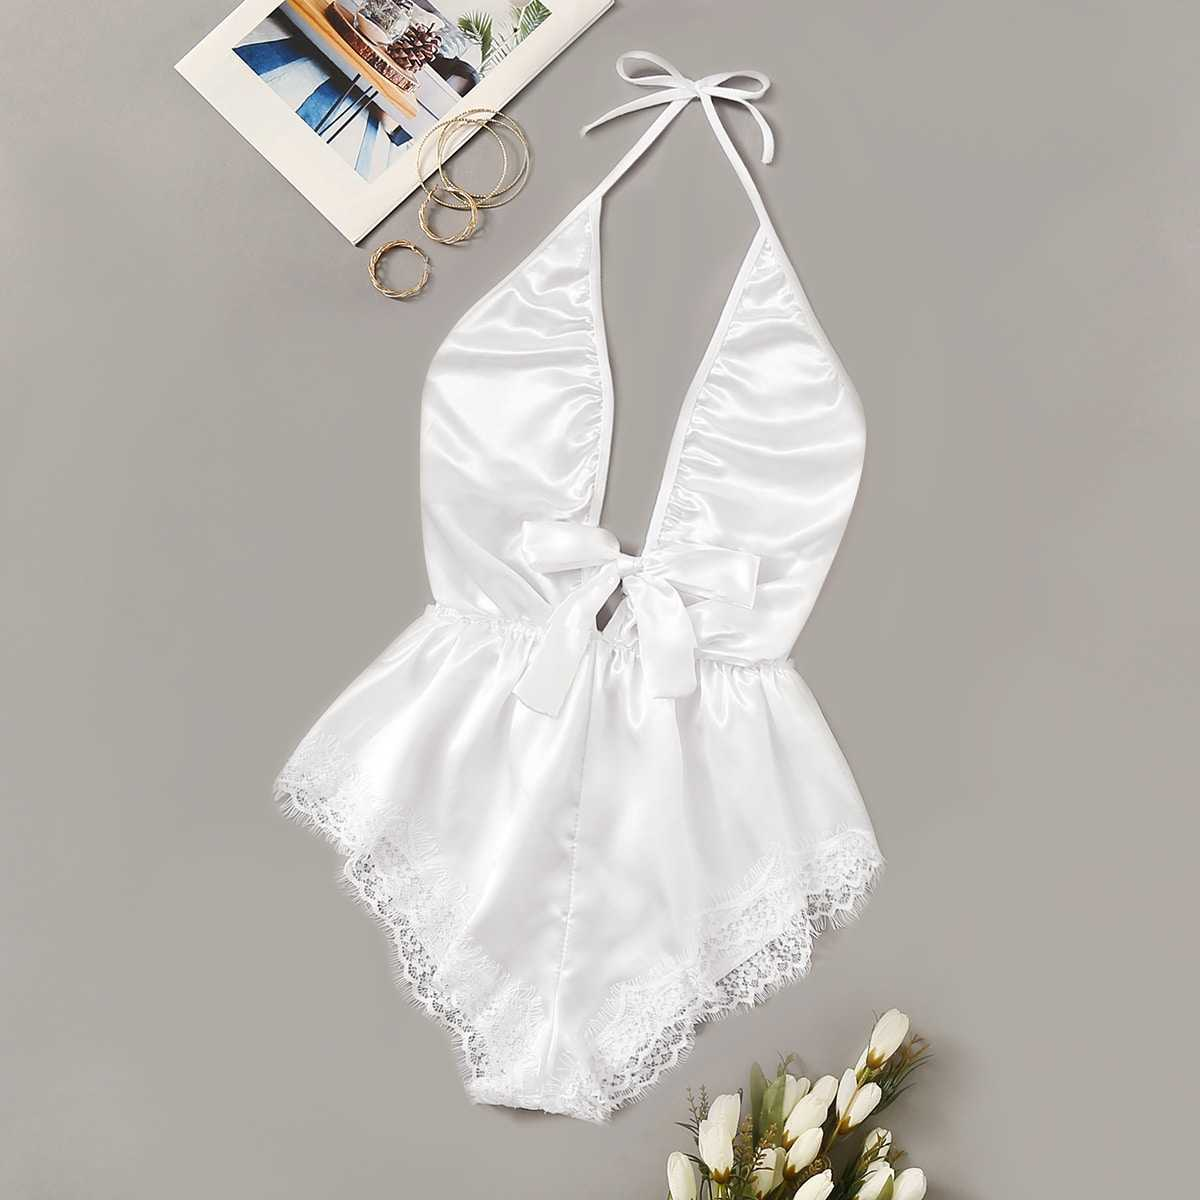 Lace Trim Satin Romper Bodysuit in White by ROMWE on GOOFASH